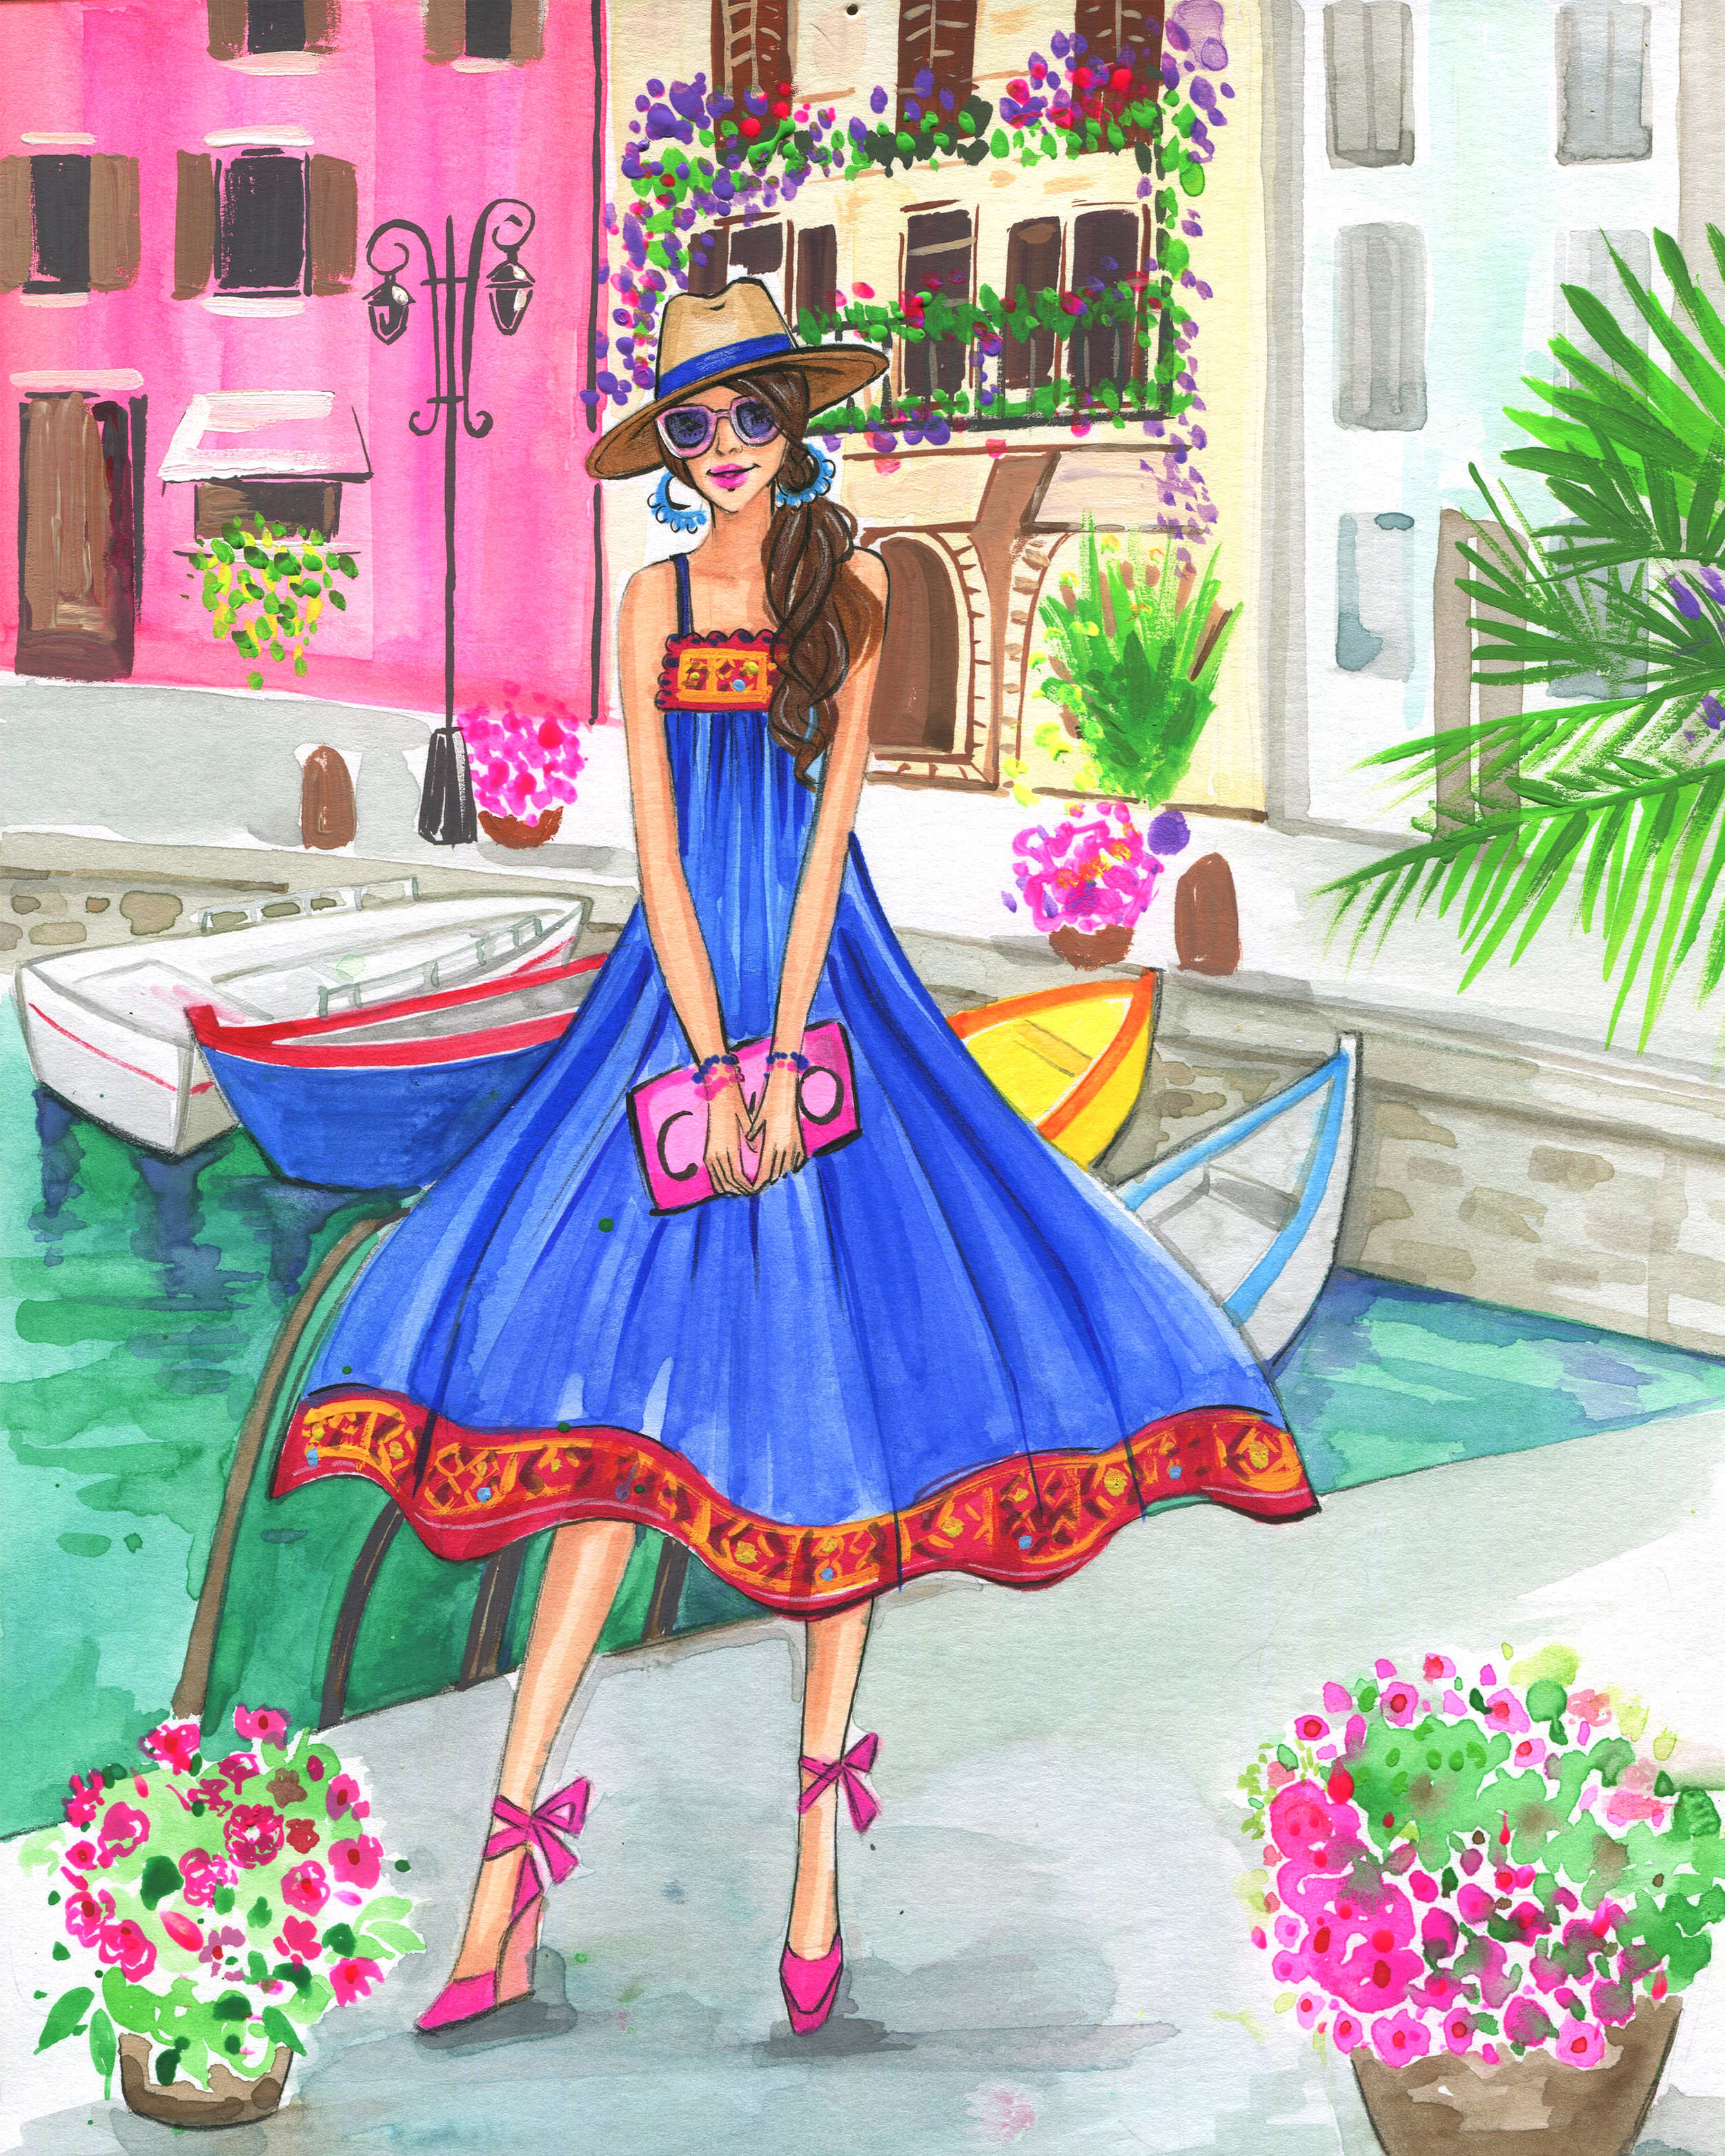 Italian street fashion illustration by Houston fashion illustrator Rongrong DeVoe